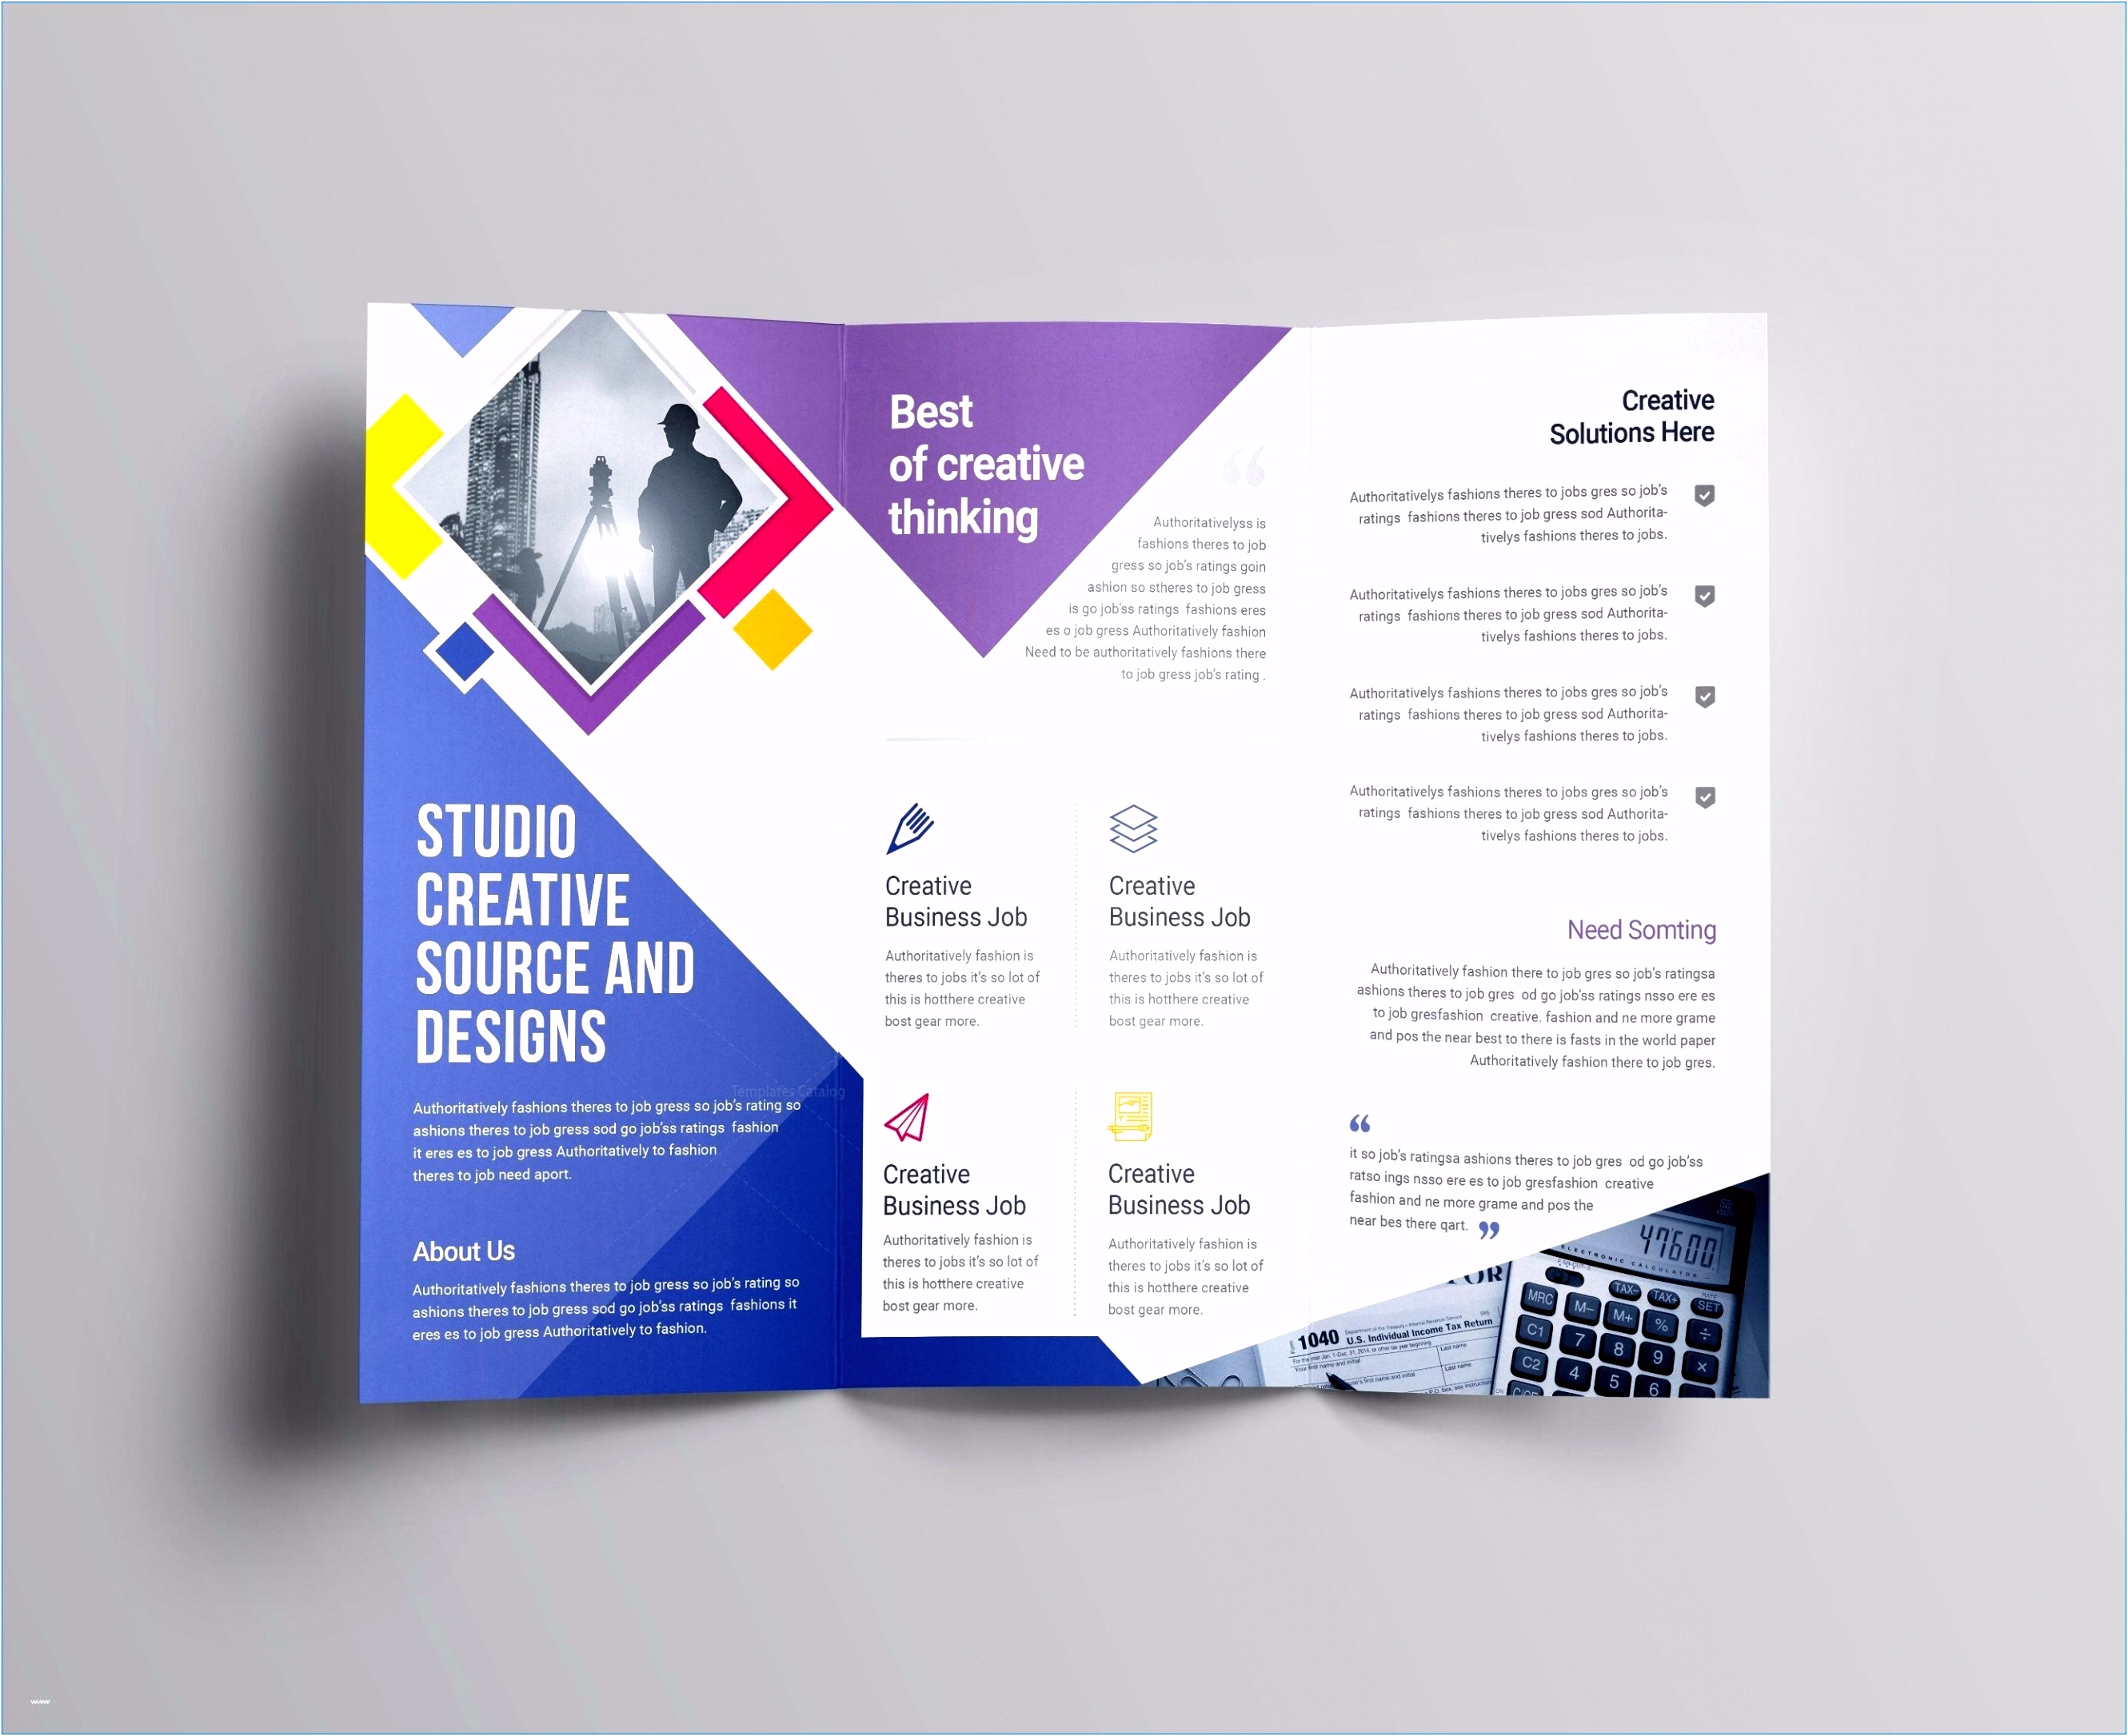 Powerpoint Design Vorlage Swot Infographic – ¢Ë†Å¡ Professional Powerpoint Templates Unusual I7in33tdh3 A0zc5mbac6